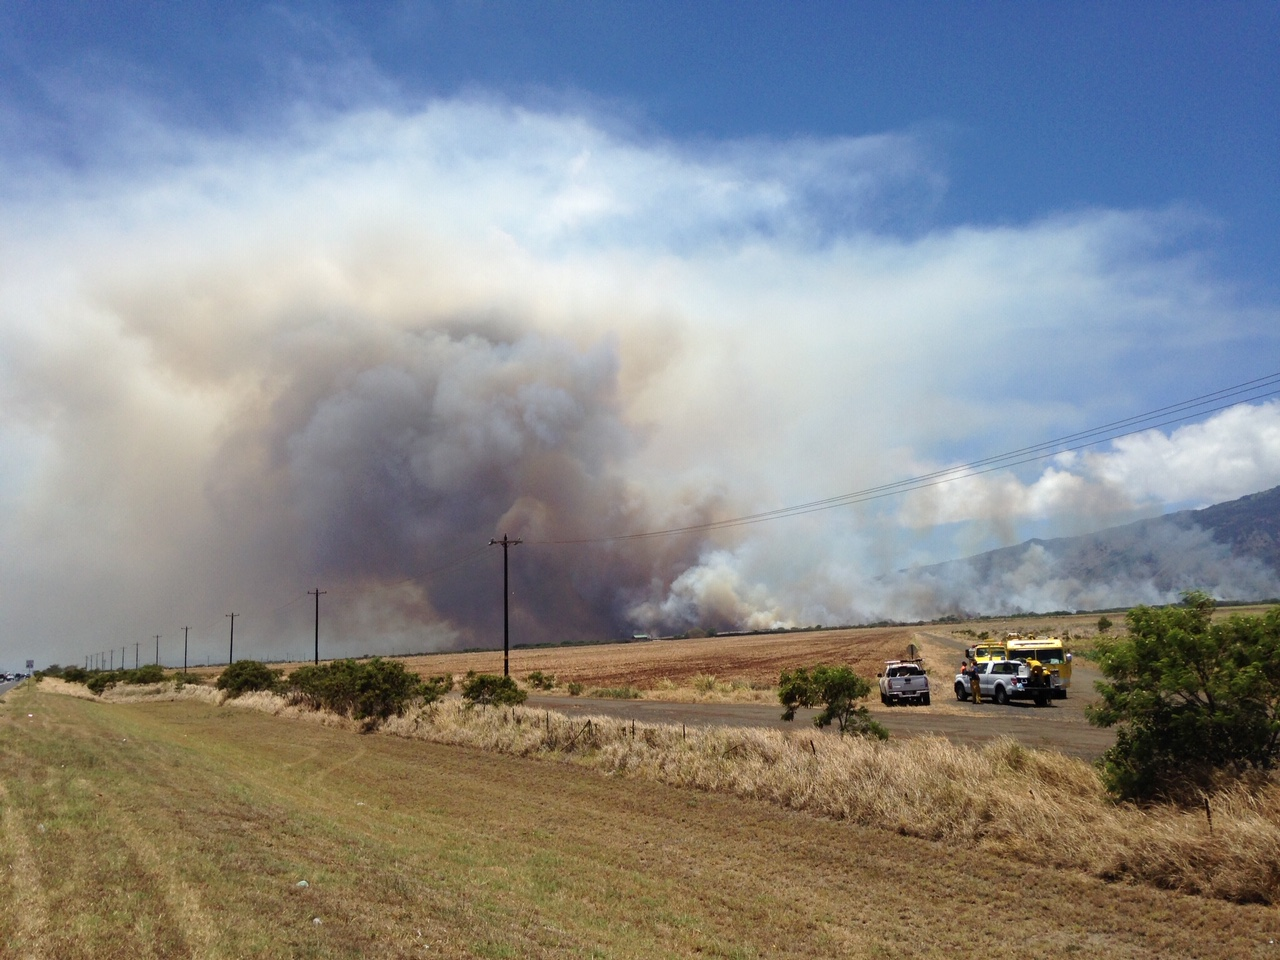 road closures due to fires - photo #5